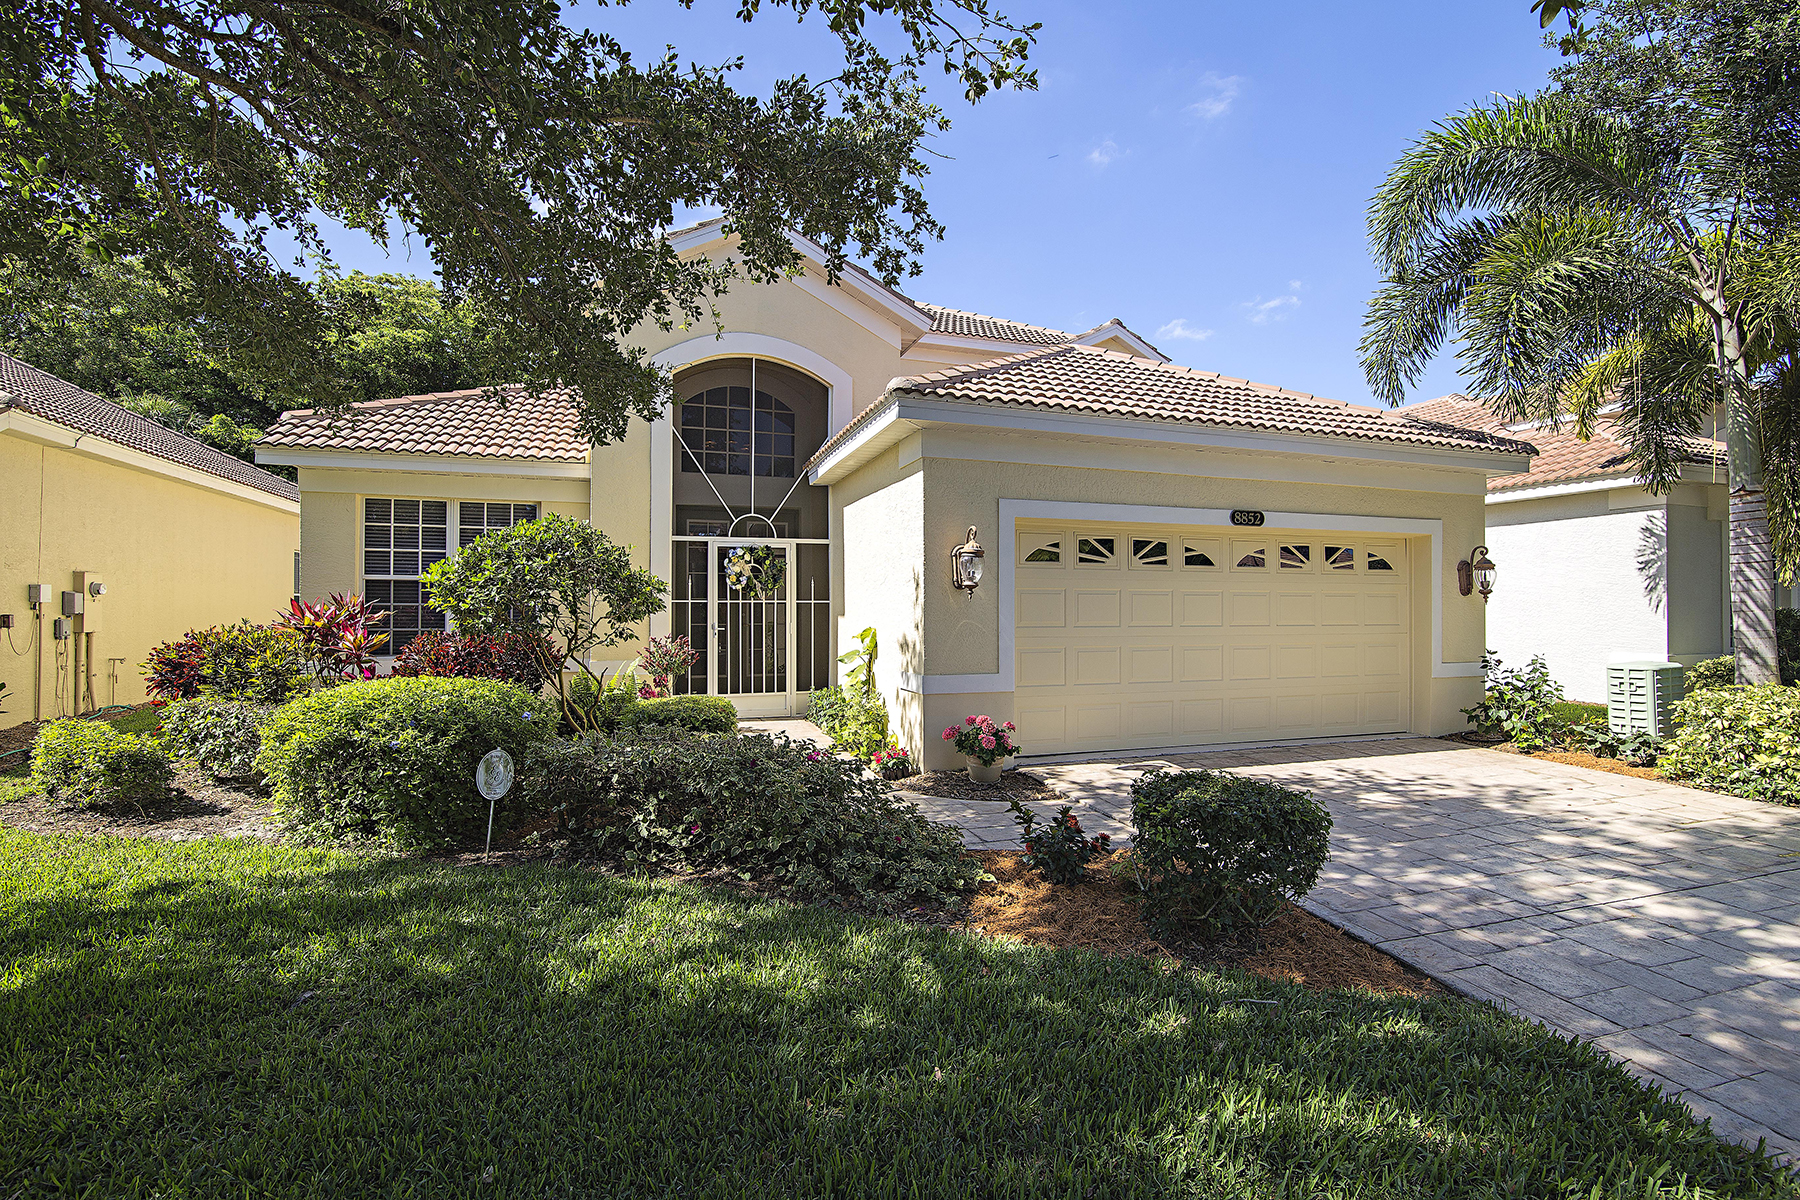 Single Family Home for Rent at PELICAN MARSH - VENTURA 8852 Ventura Way Naples, Florida 34109 United States